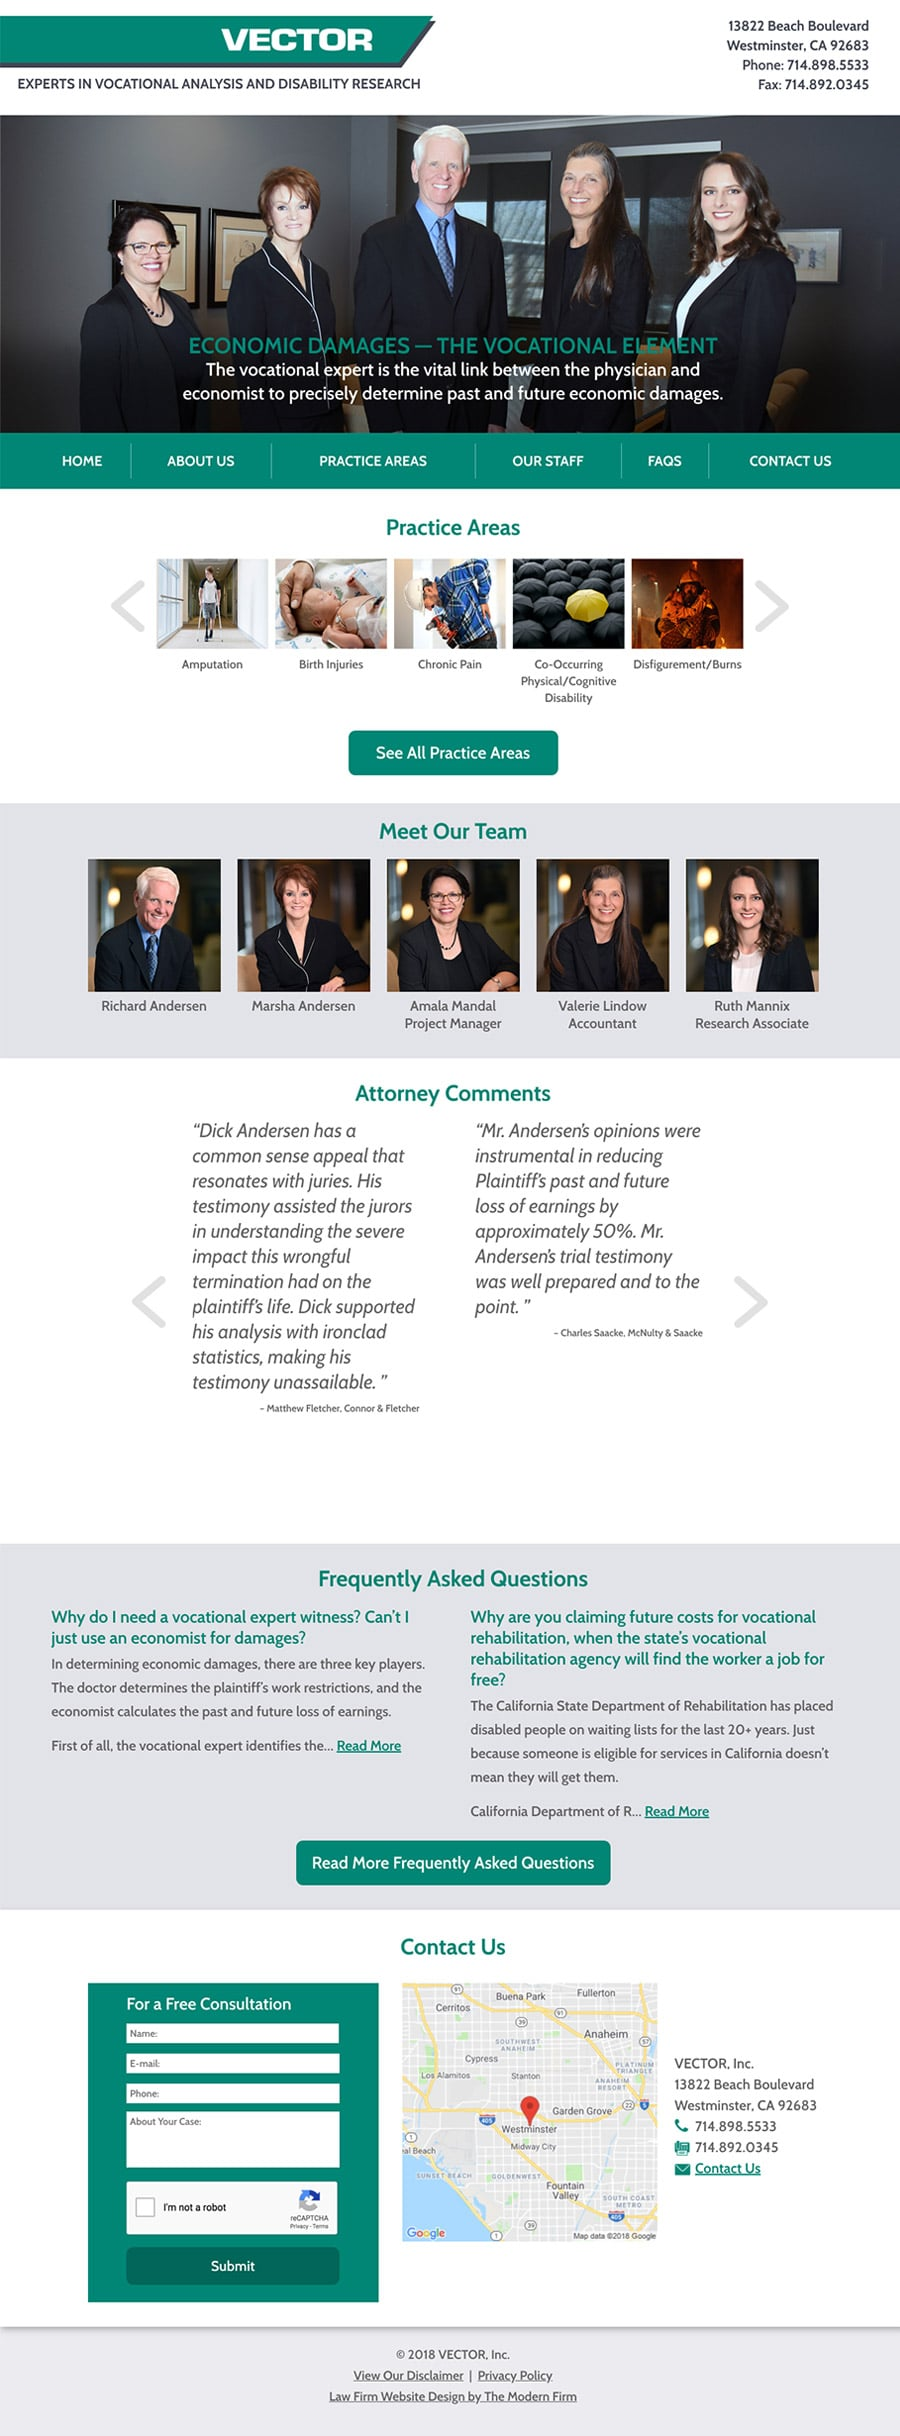 Law Firm Website Design for VECTOR, Inc.